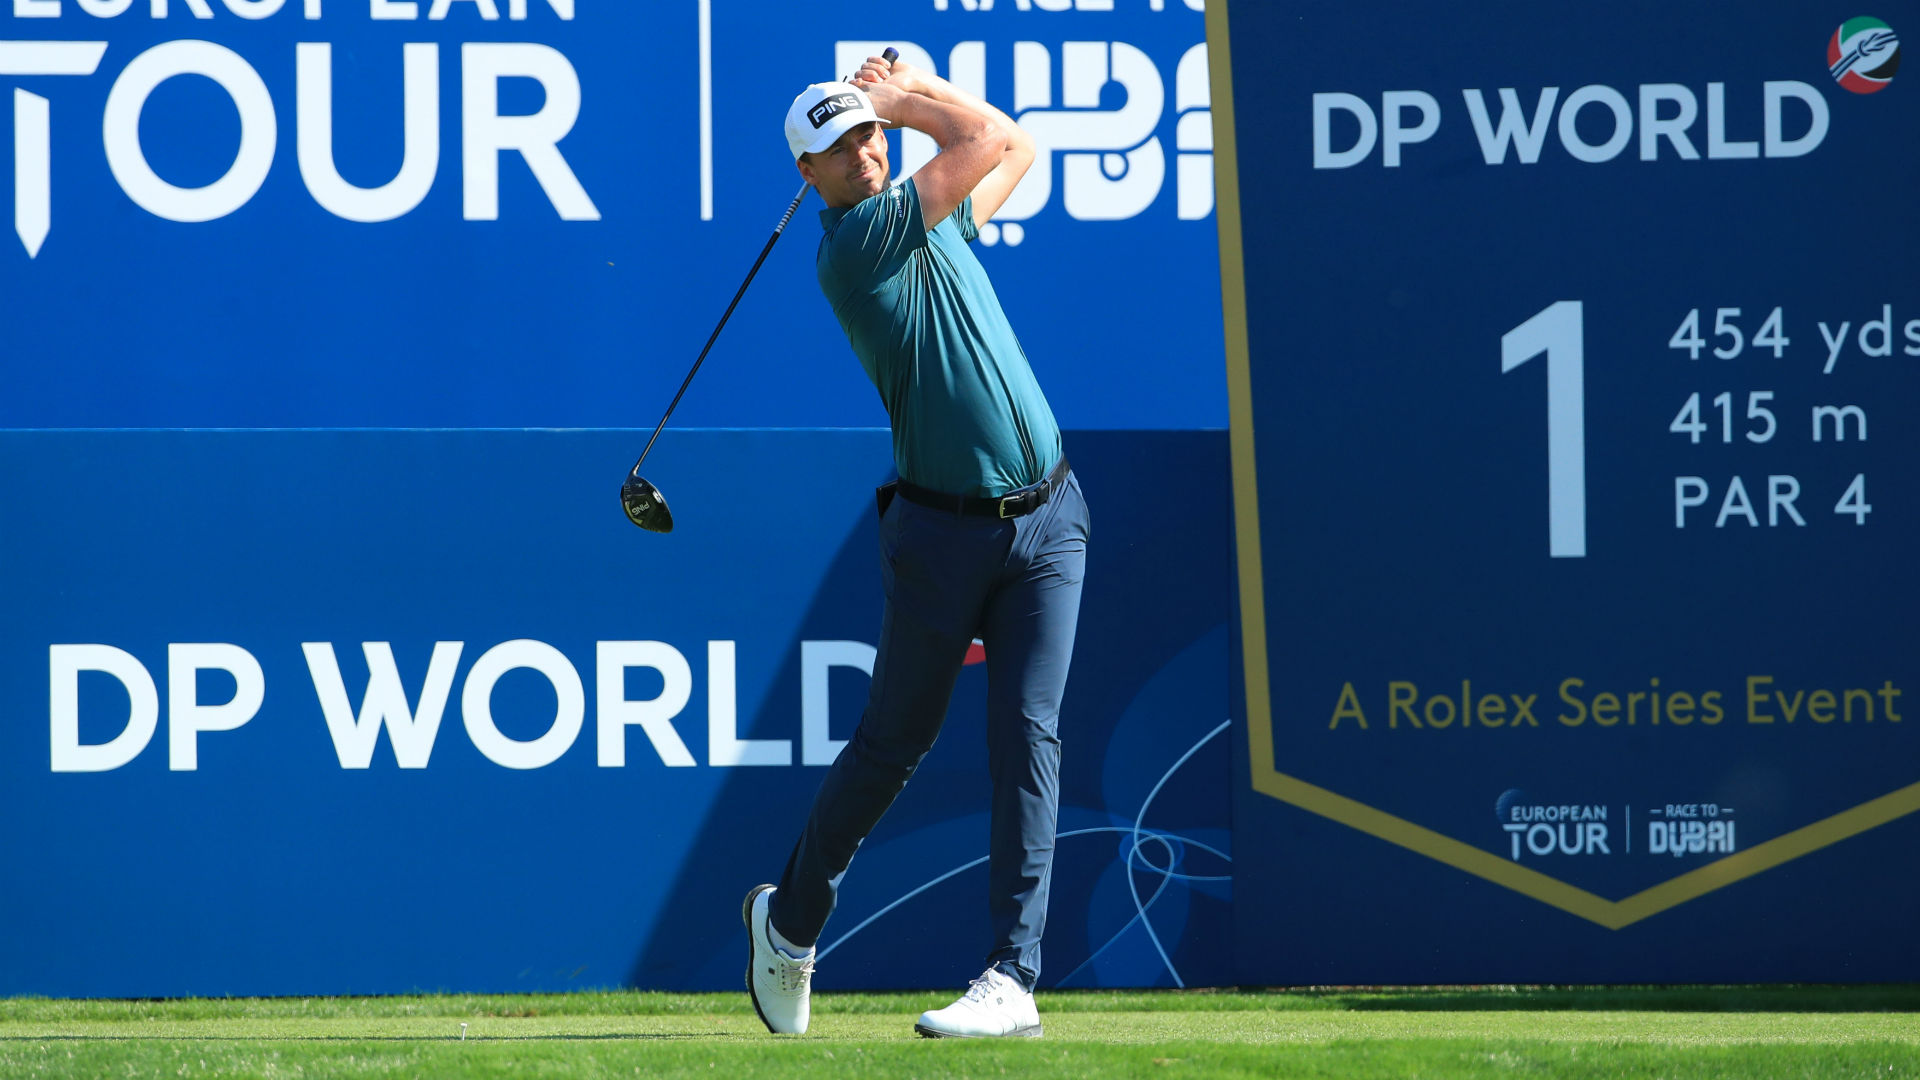 Perez on course for delightful double at DP World Tour Championship